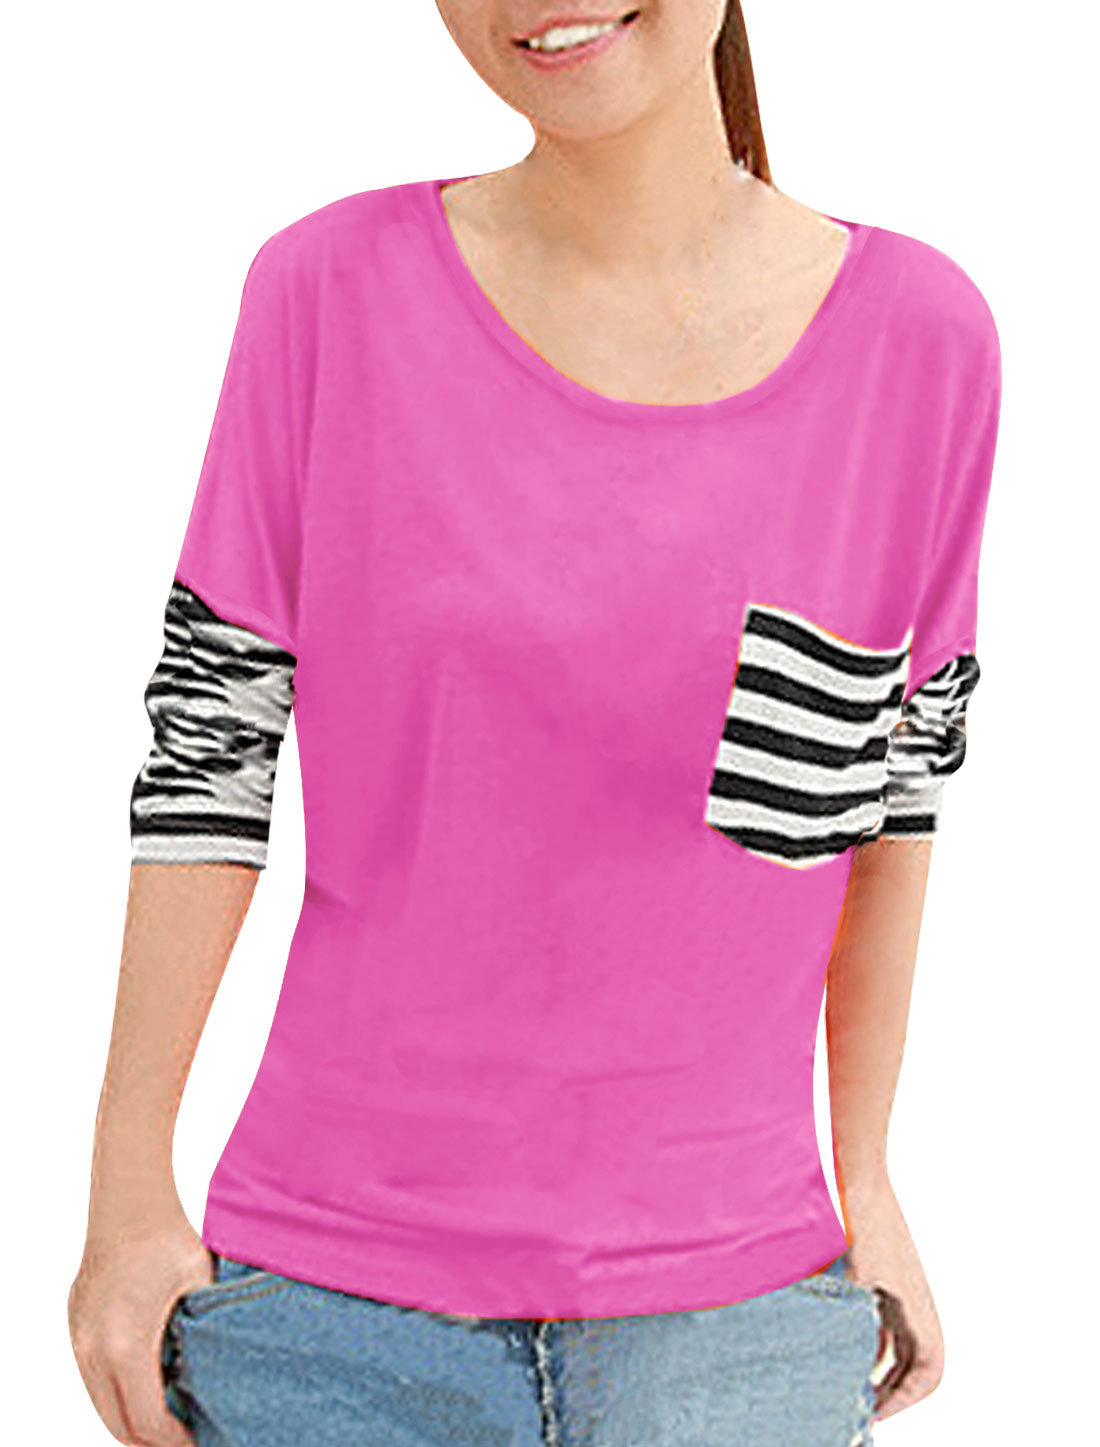 Lady Stripe Breast Pocket Fuchsia Scoop Neck Shirt Top S